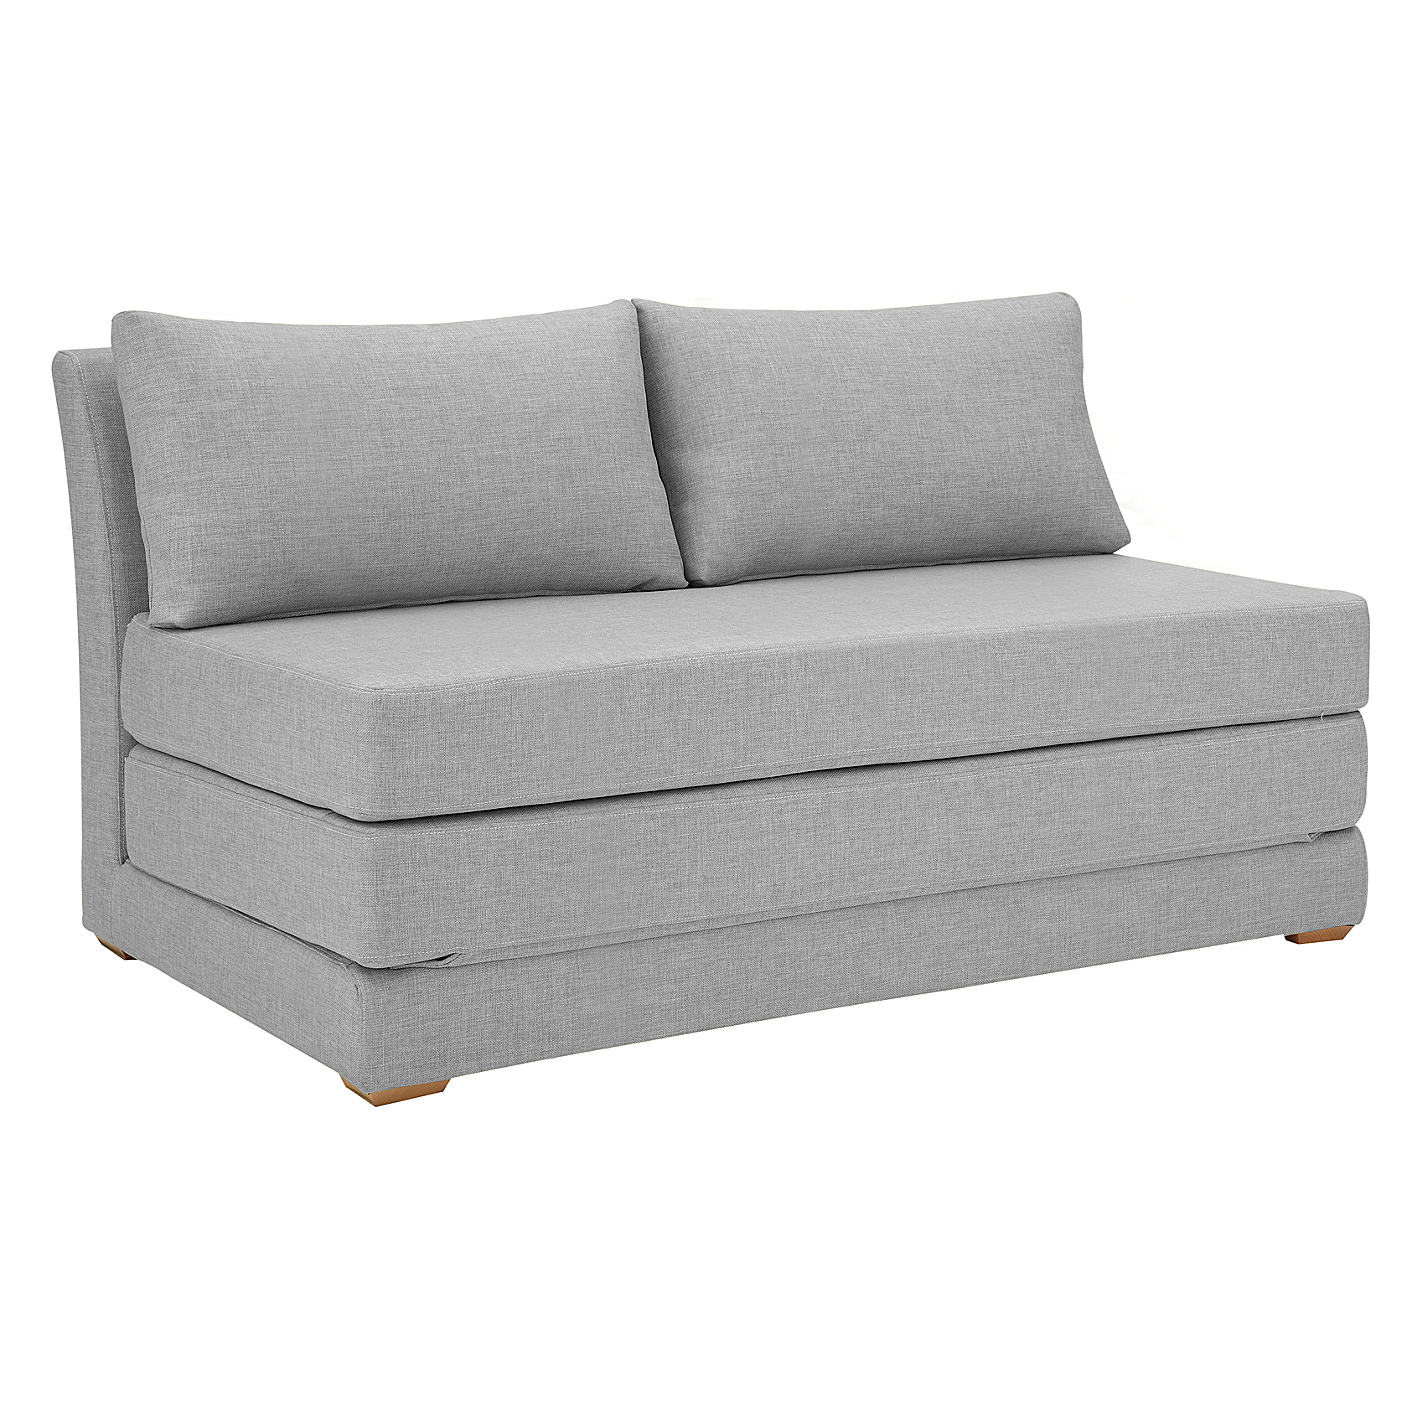 Buy John Lewis Kip Small Sofa Bed with Foam Mattress Light Leg